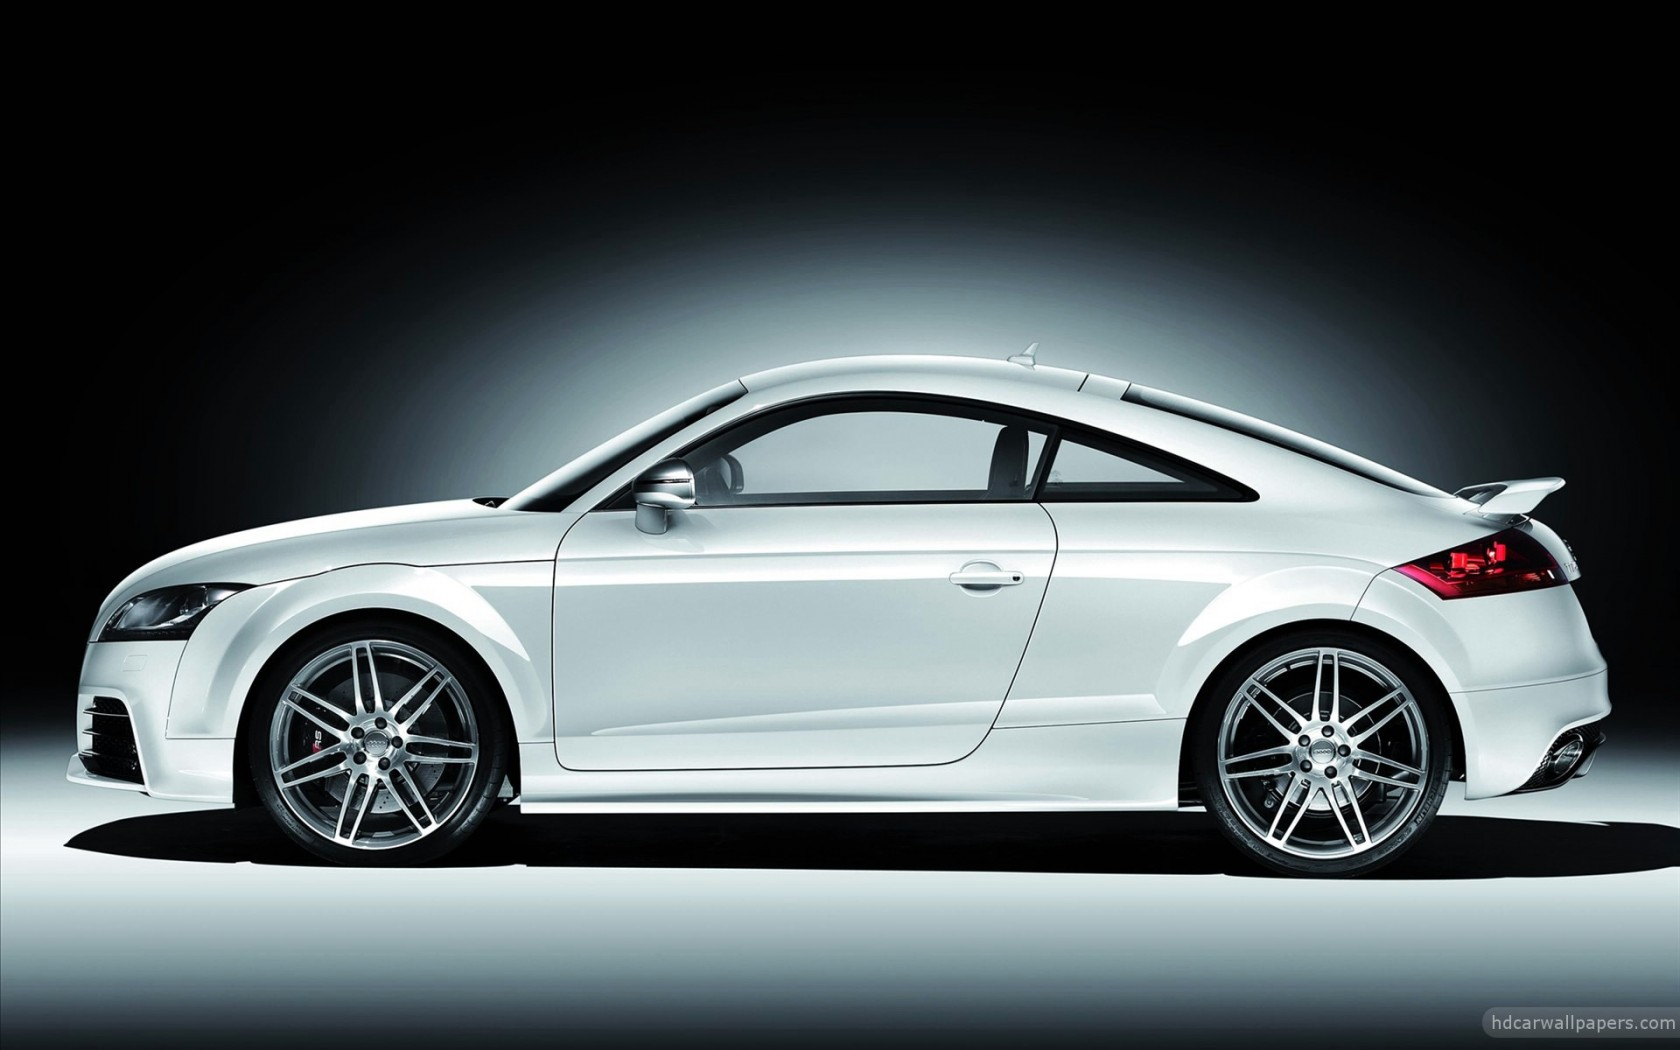 2012 Audi TT RS 3 Wallpaper | HD Car Wallpapers